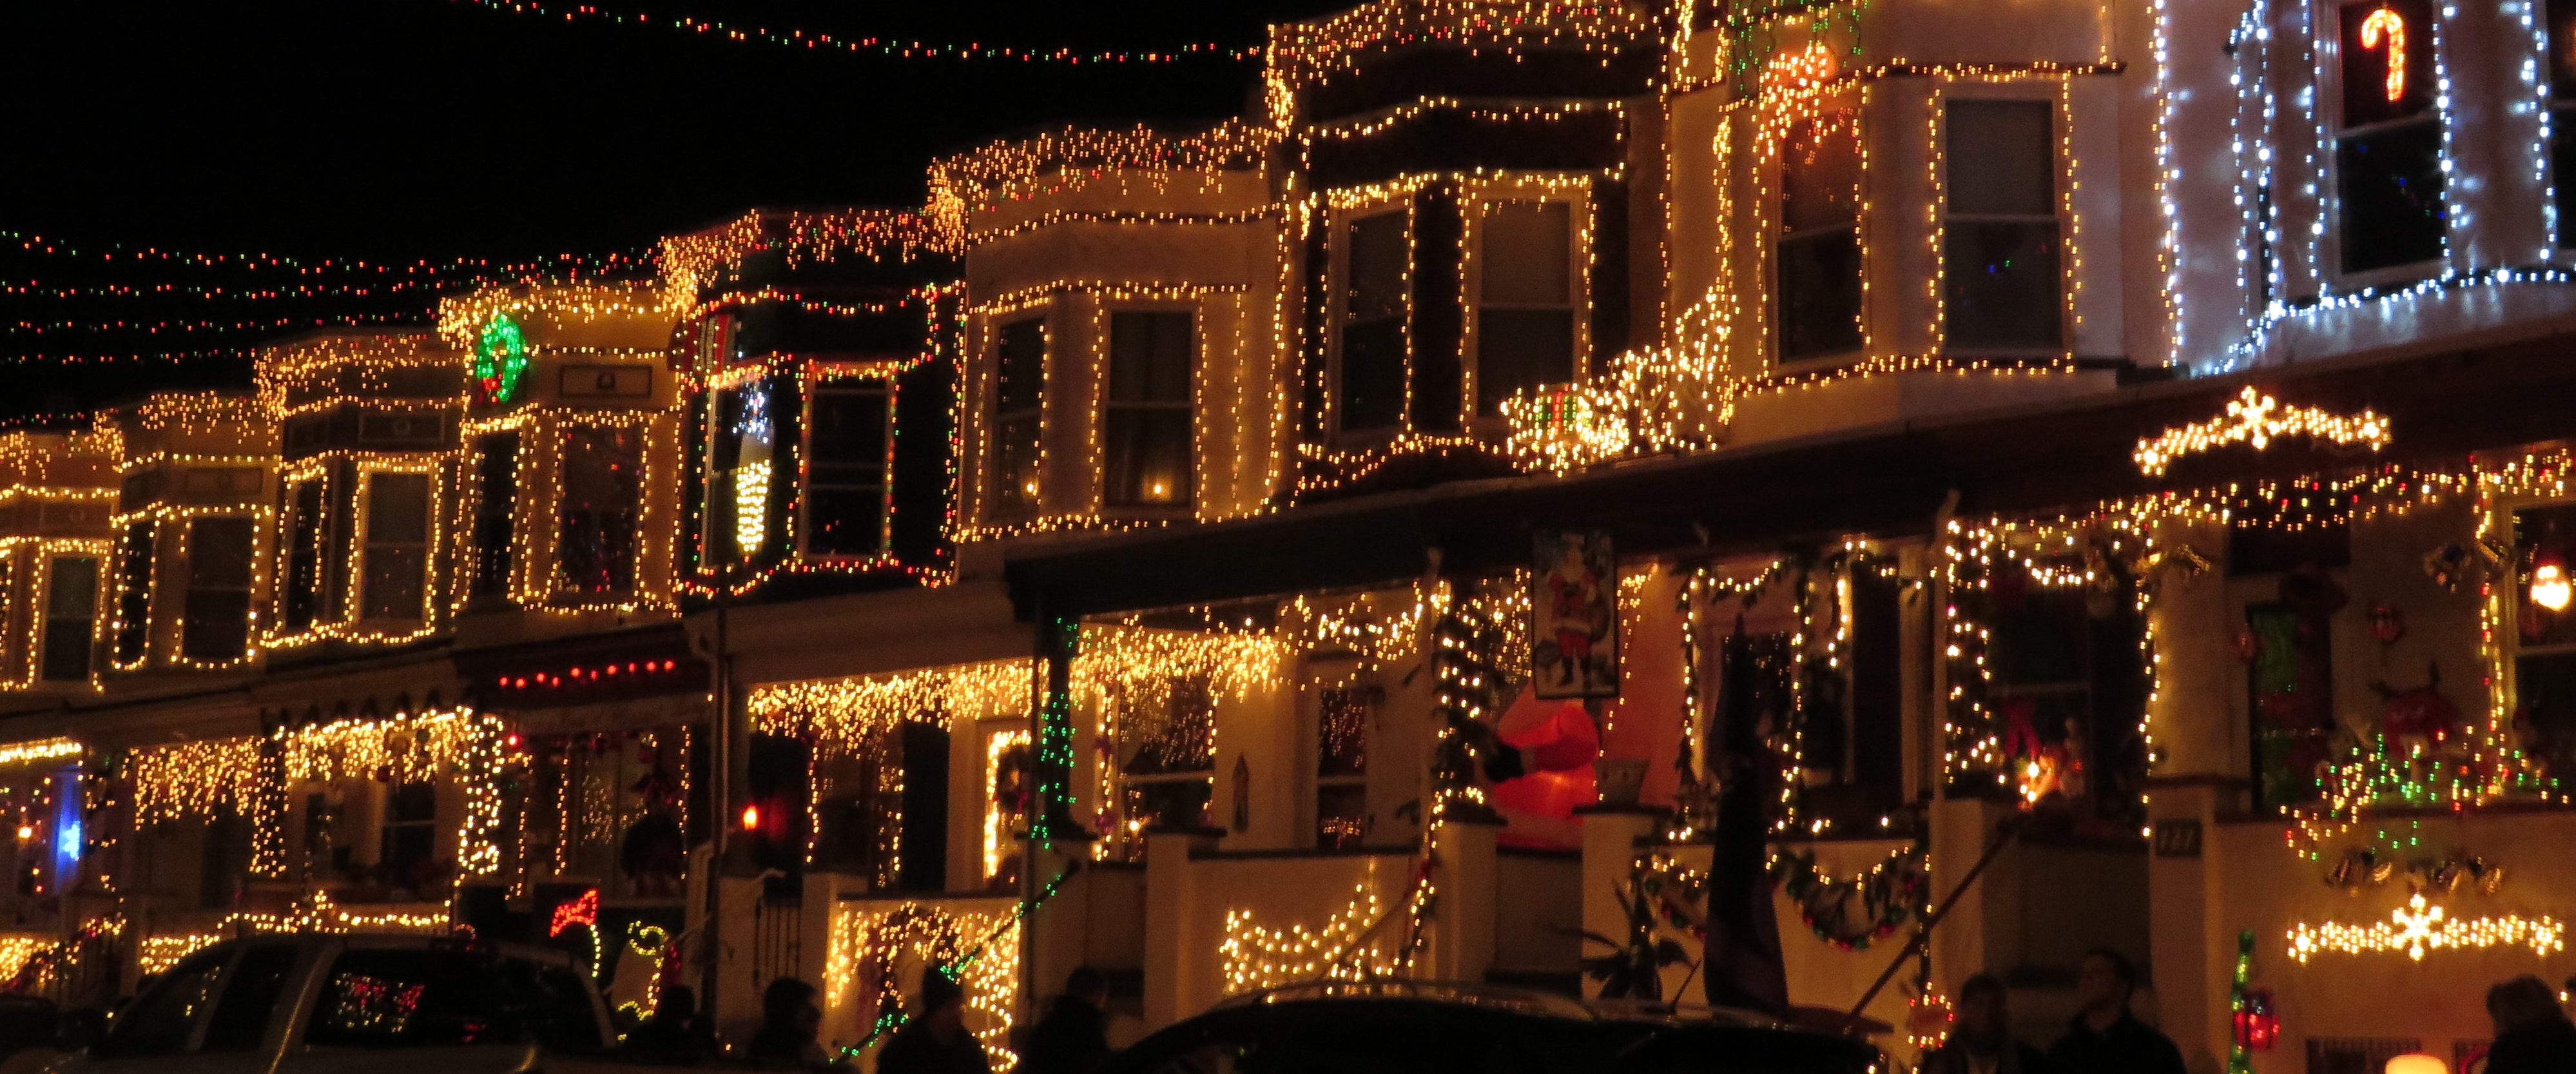 TIPSY TOURIST: Spiked Cider and Christmas Lights | A Day Away Travel